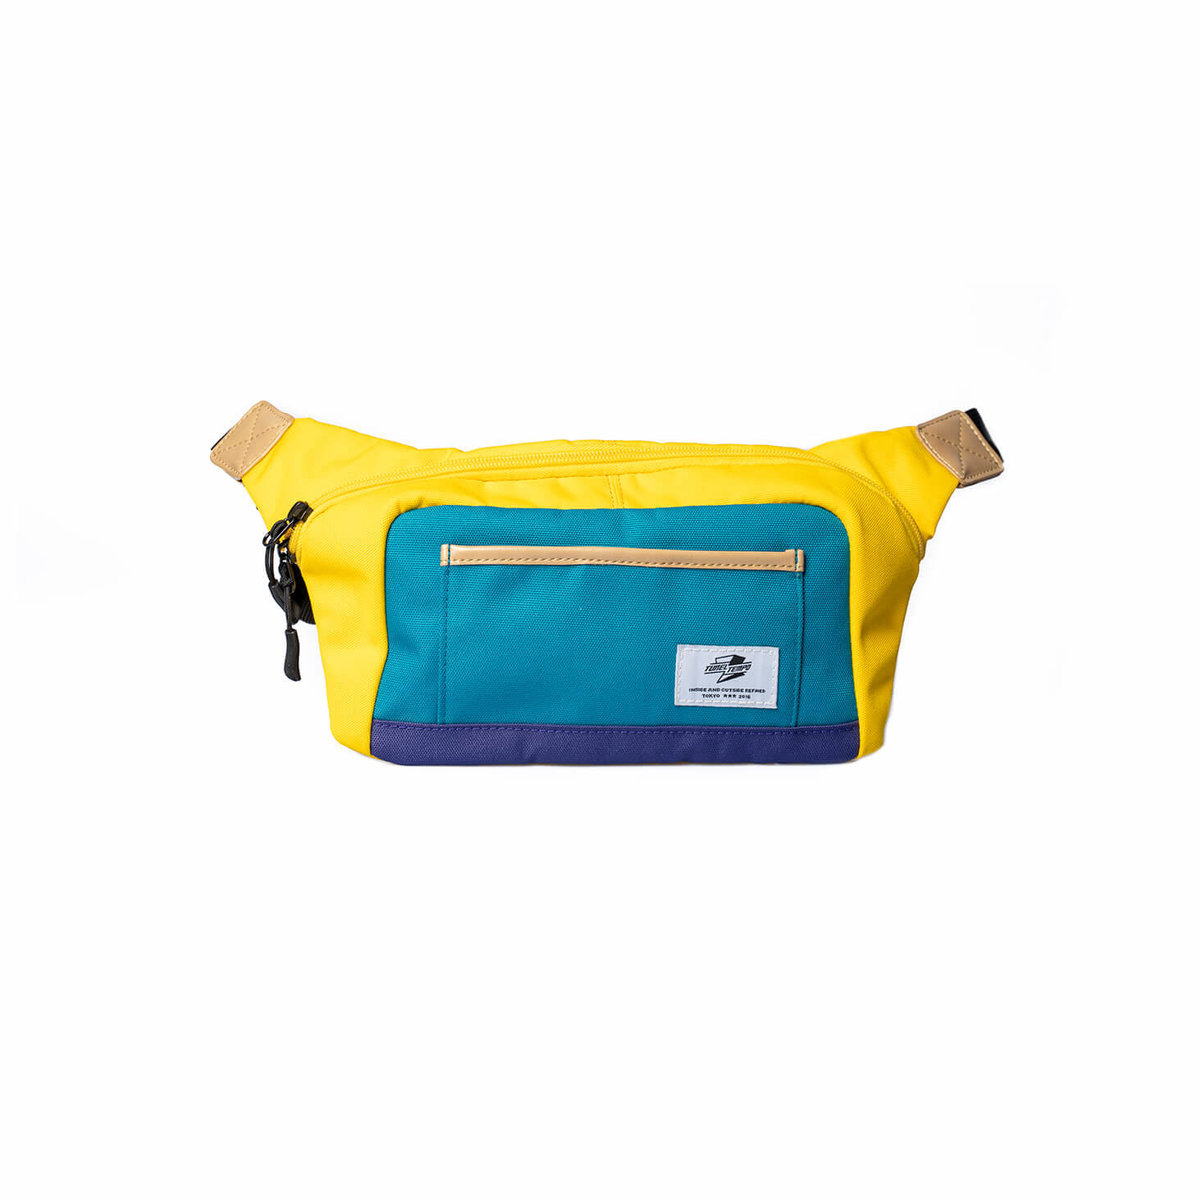 Tunnel Tempo Daily fresh street snap yellow-blue contrast color cross body bag